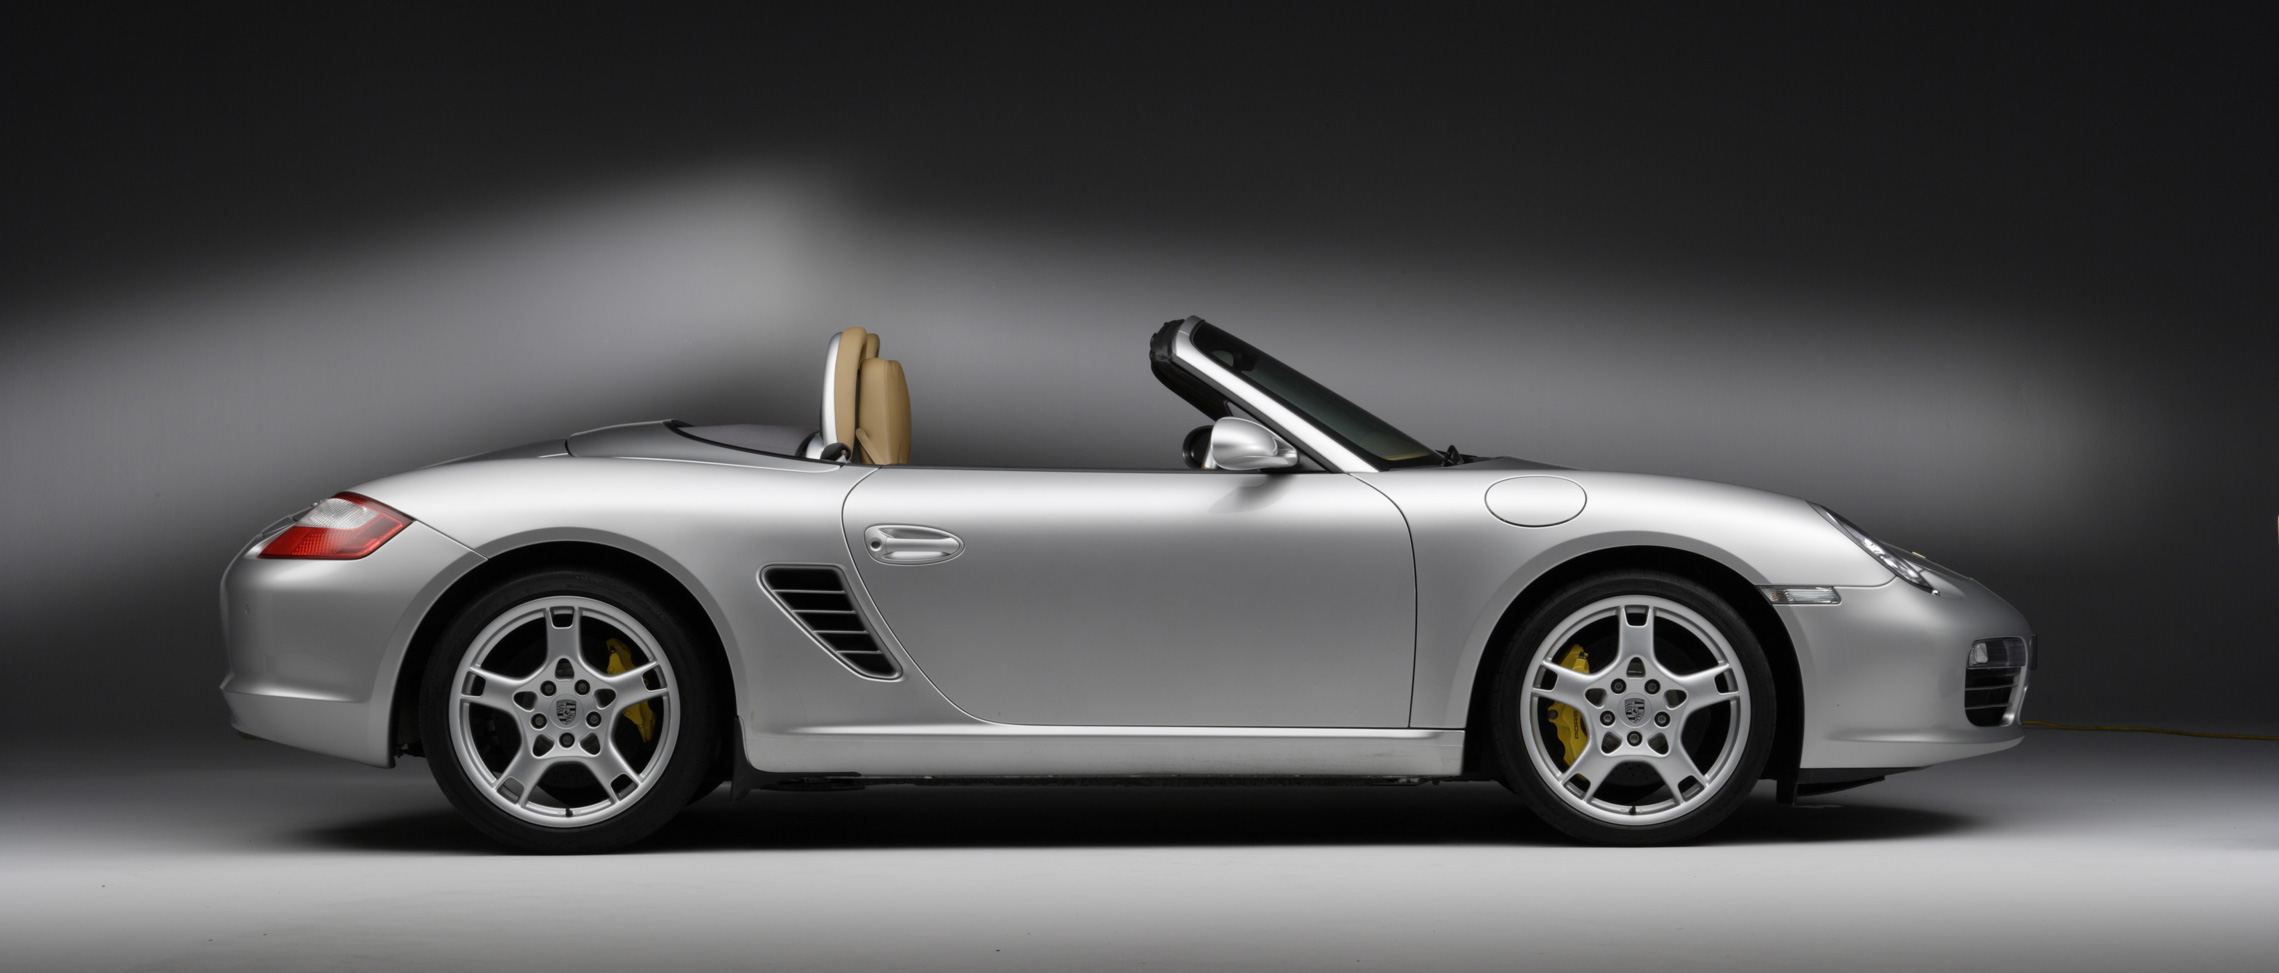 Boxster-01-01